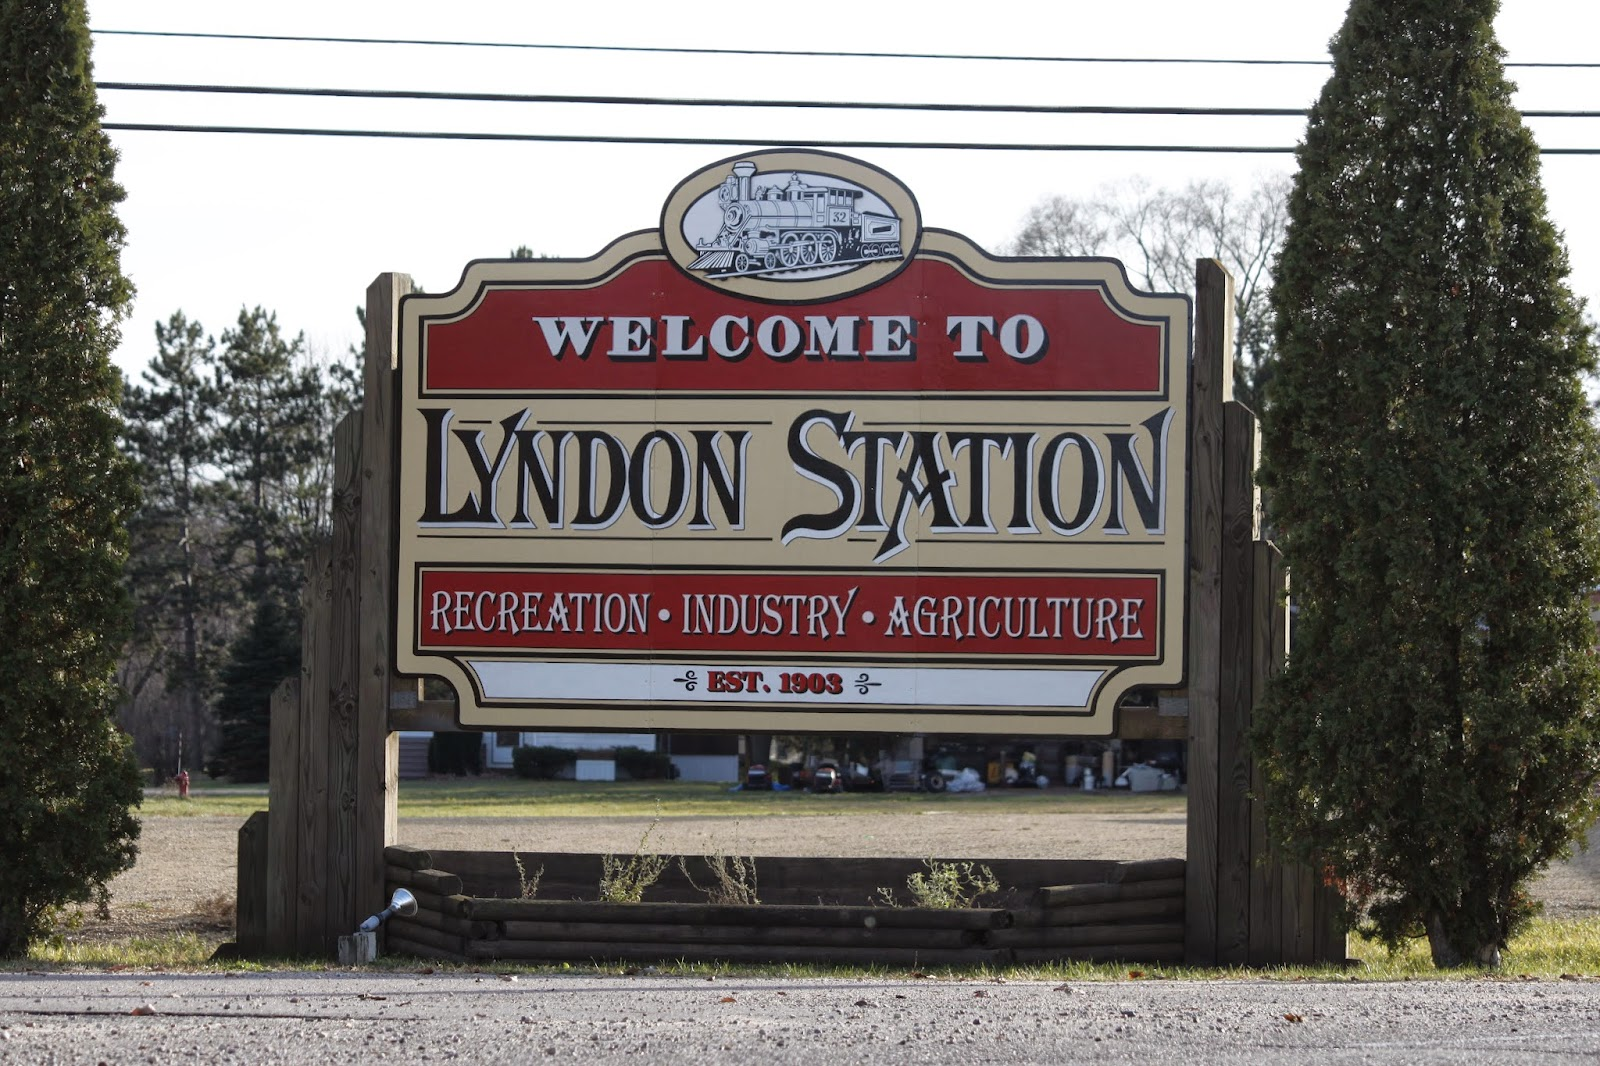 lyndon station men Meet, chat, & share photos online with people in lyndon station, wi find dates or start dating online express yourself through photos using oncom.